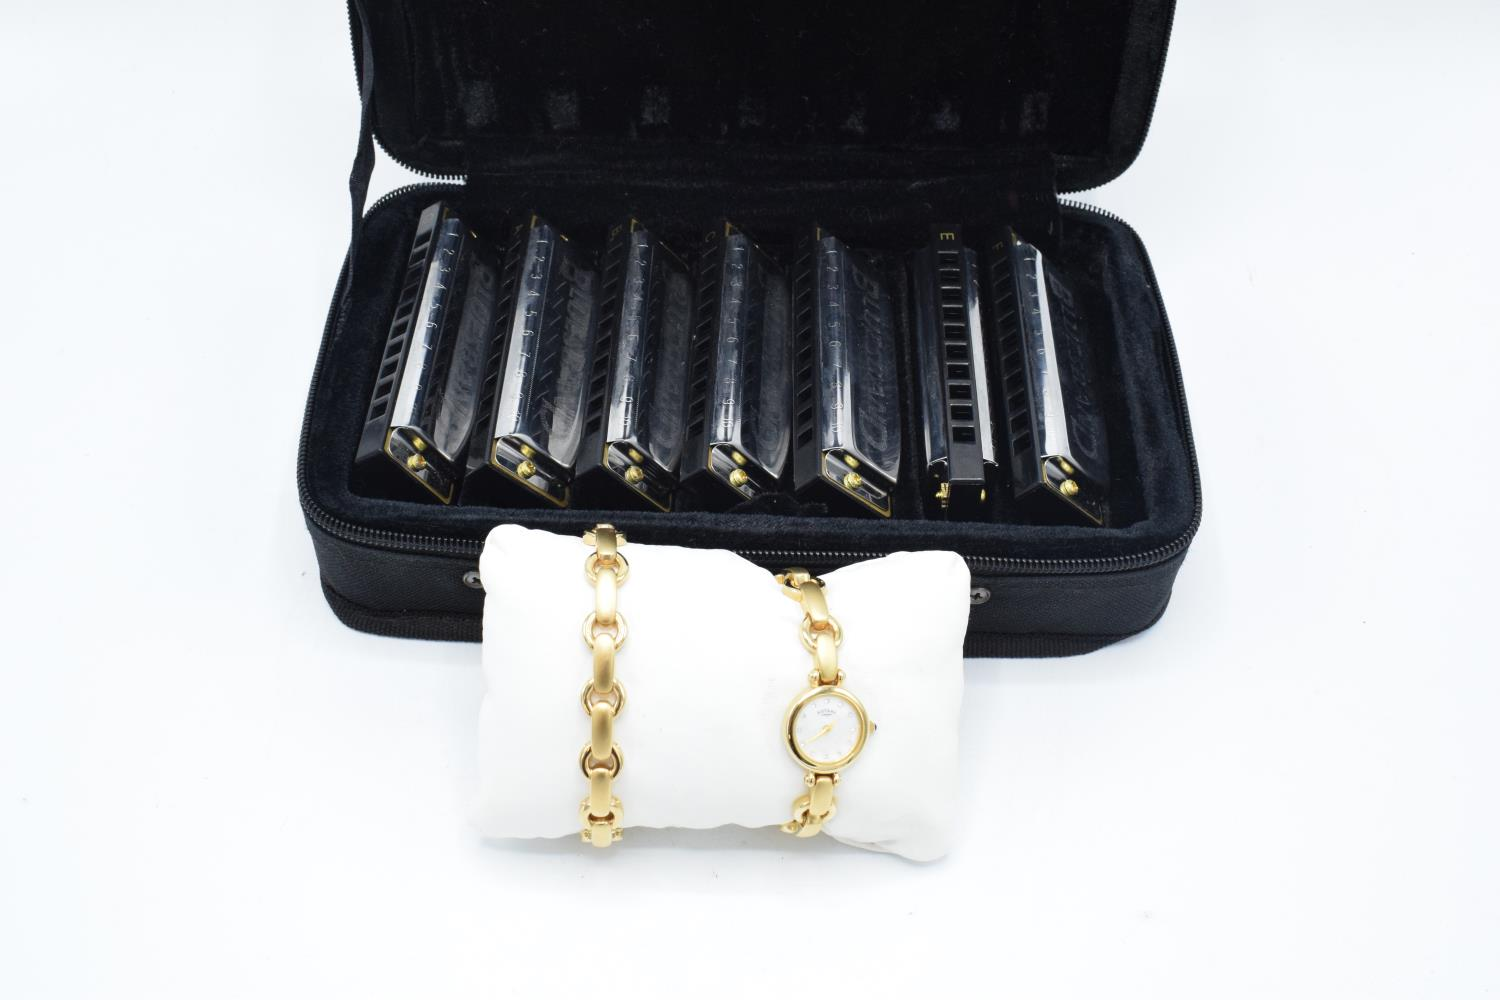 Hohner blues harmonica set together with a boxed Rotary ladies watch and bracelet set(2). In good